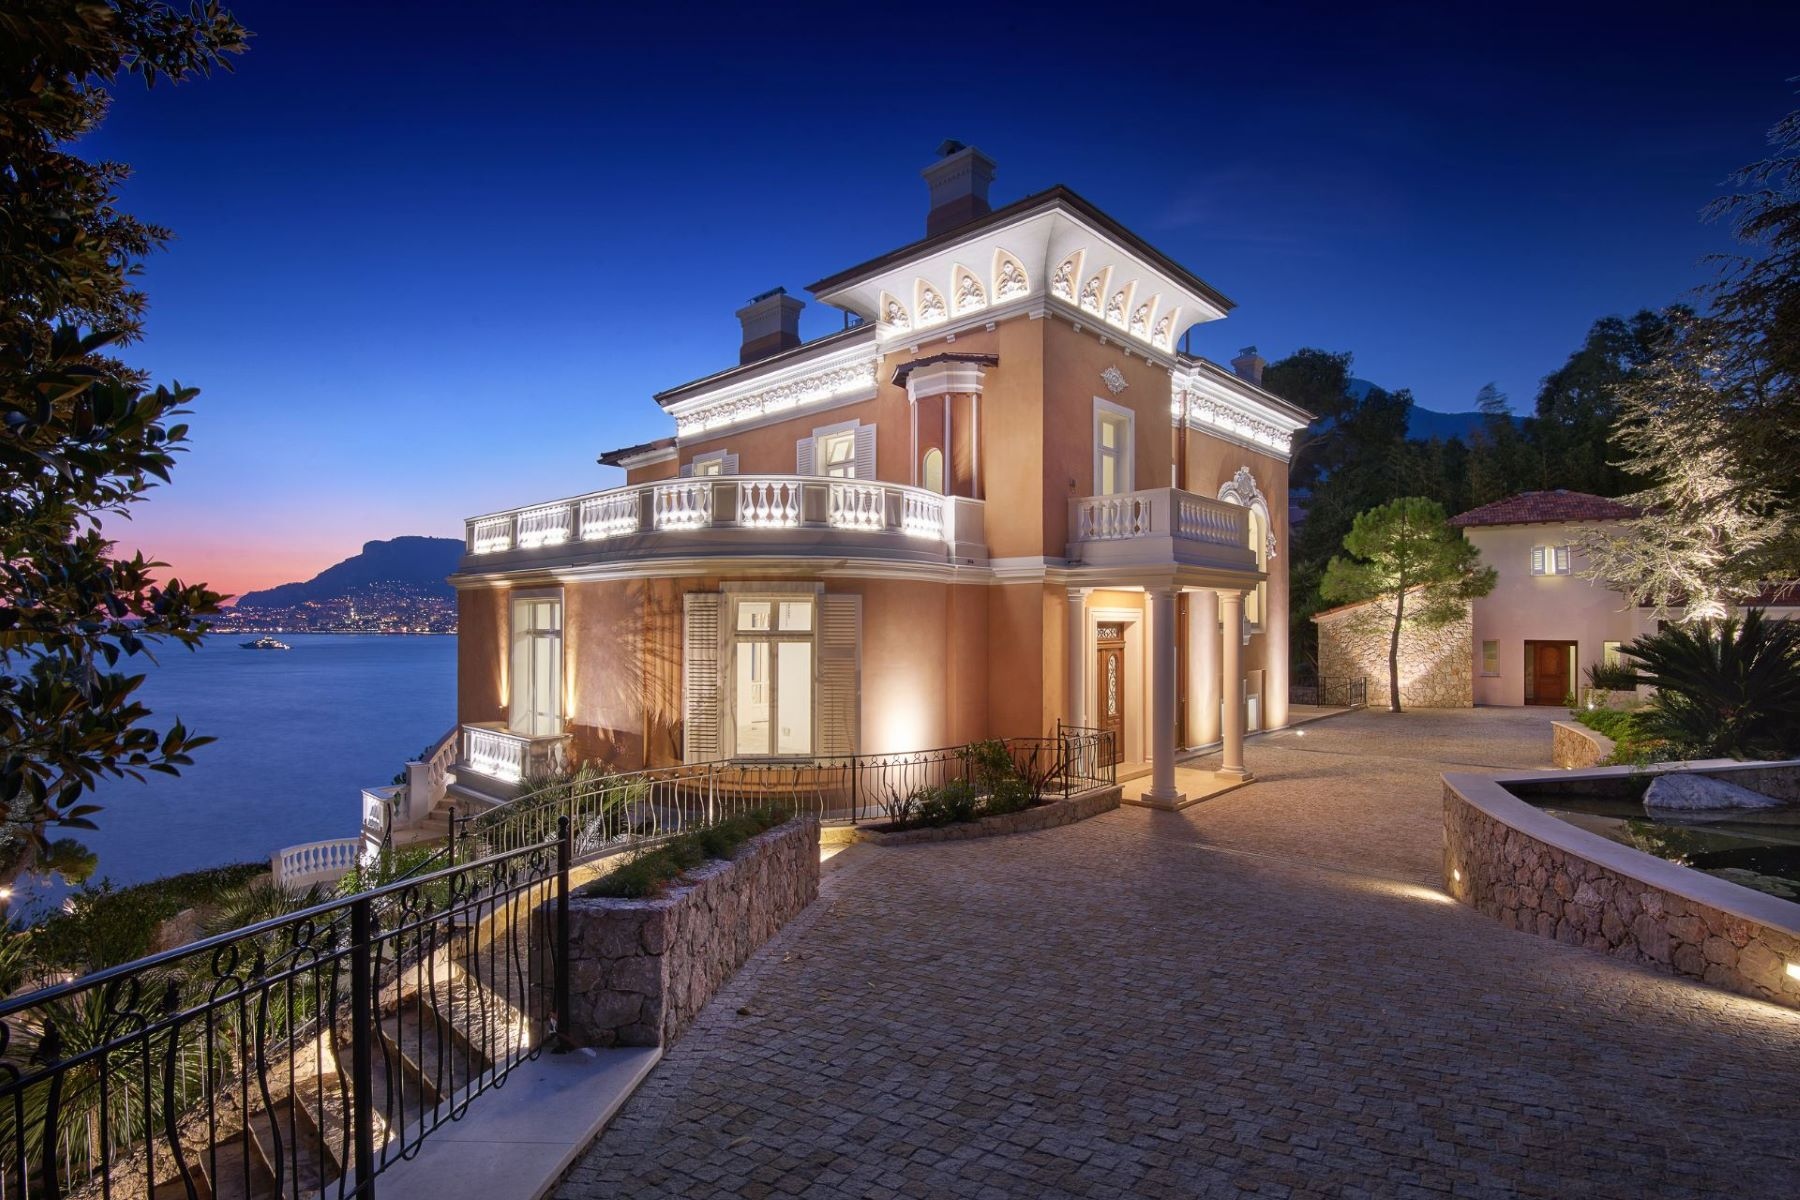 Single Family Home for Active at Sole agent - Outstanding Belle Epoque 'waterfront' mansion Roquebrune Cap Martin, Provence-Alpes-Cote D'Azur 06190 France